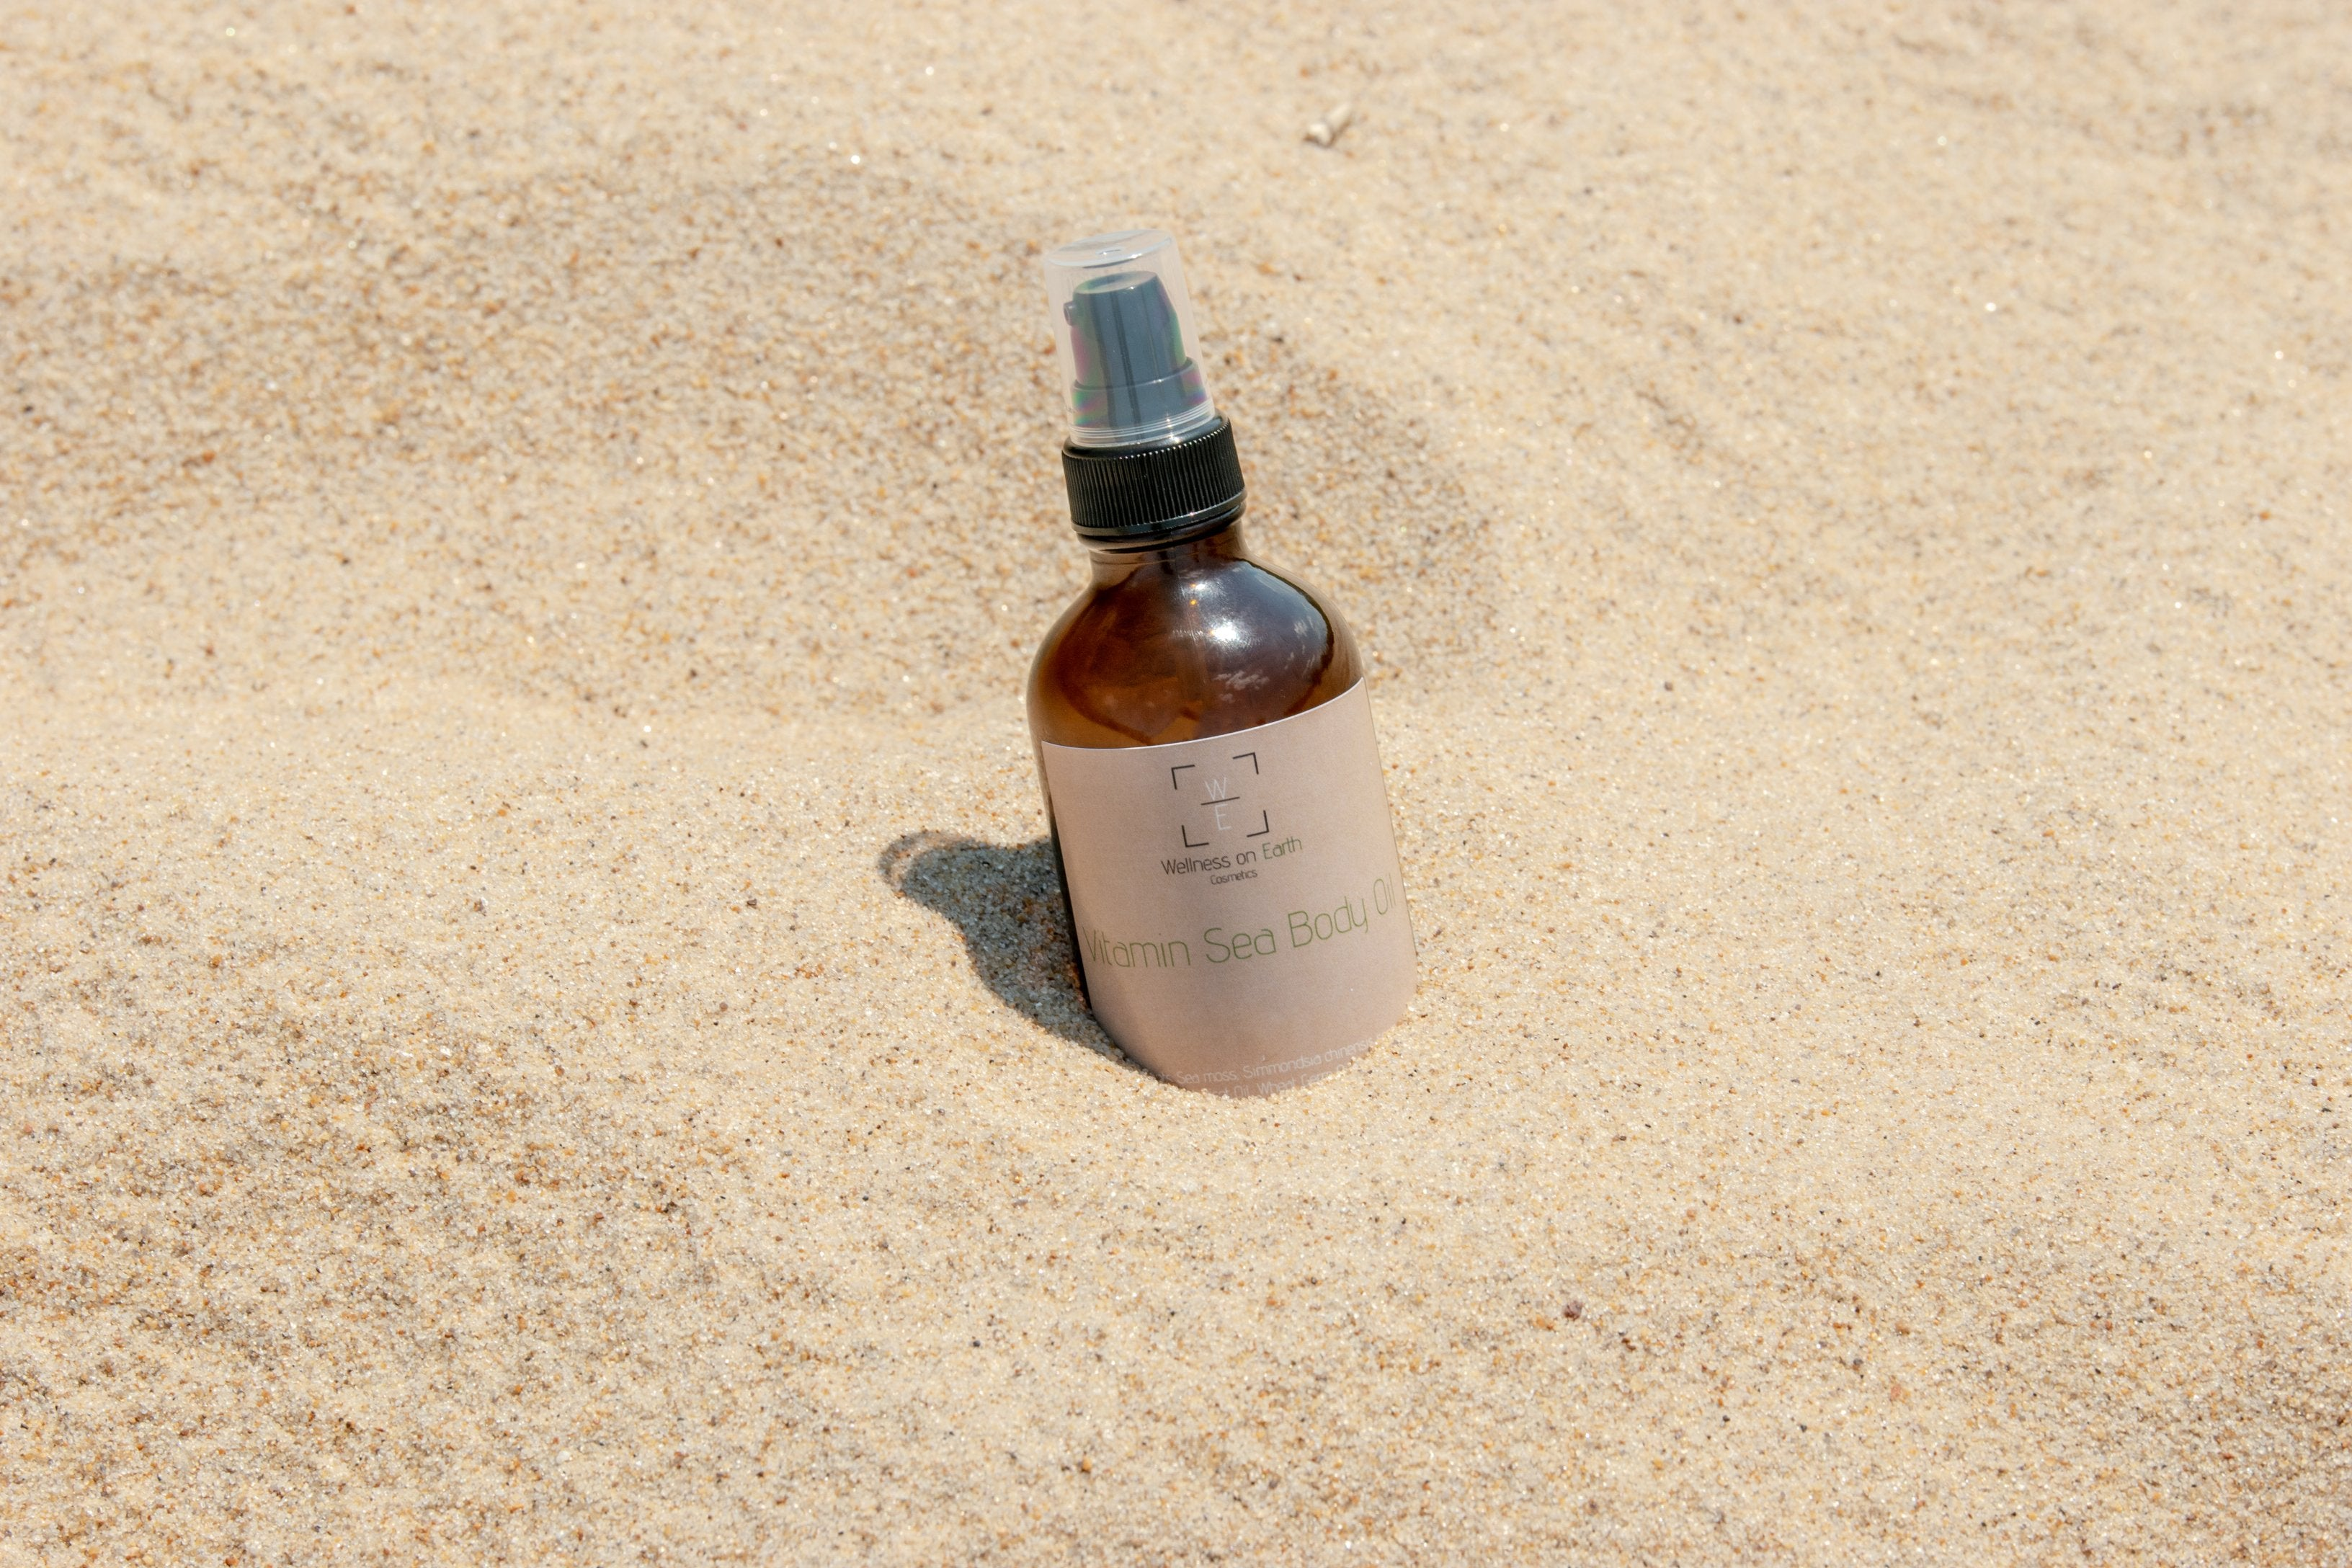 Vitamin Sea Body Oil